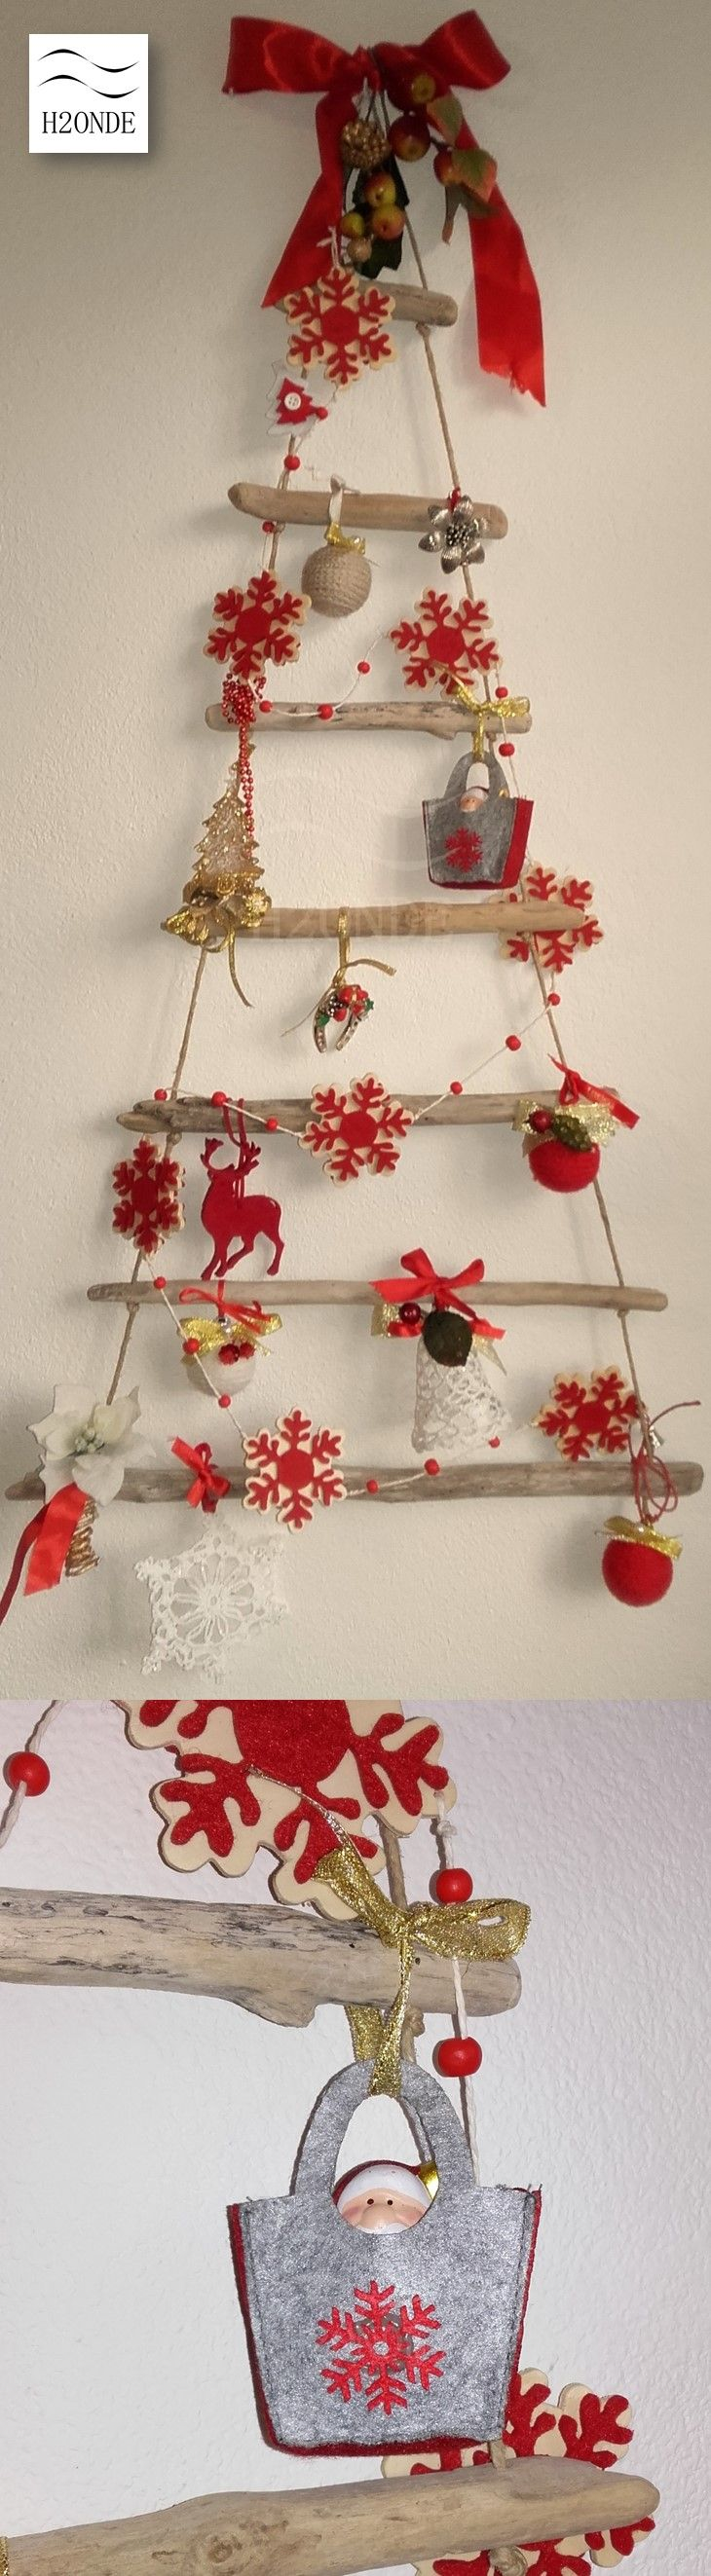 christmas wall decor wood wall tree driftwood modern coastal 13304